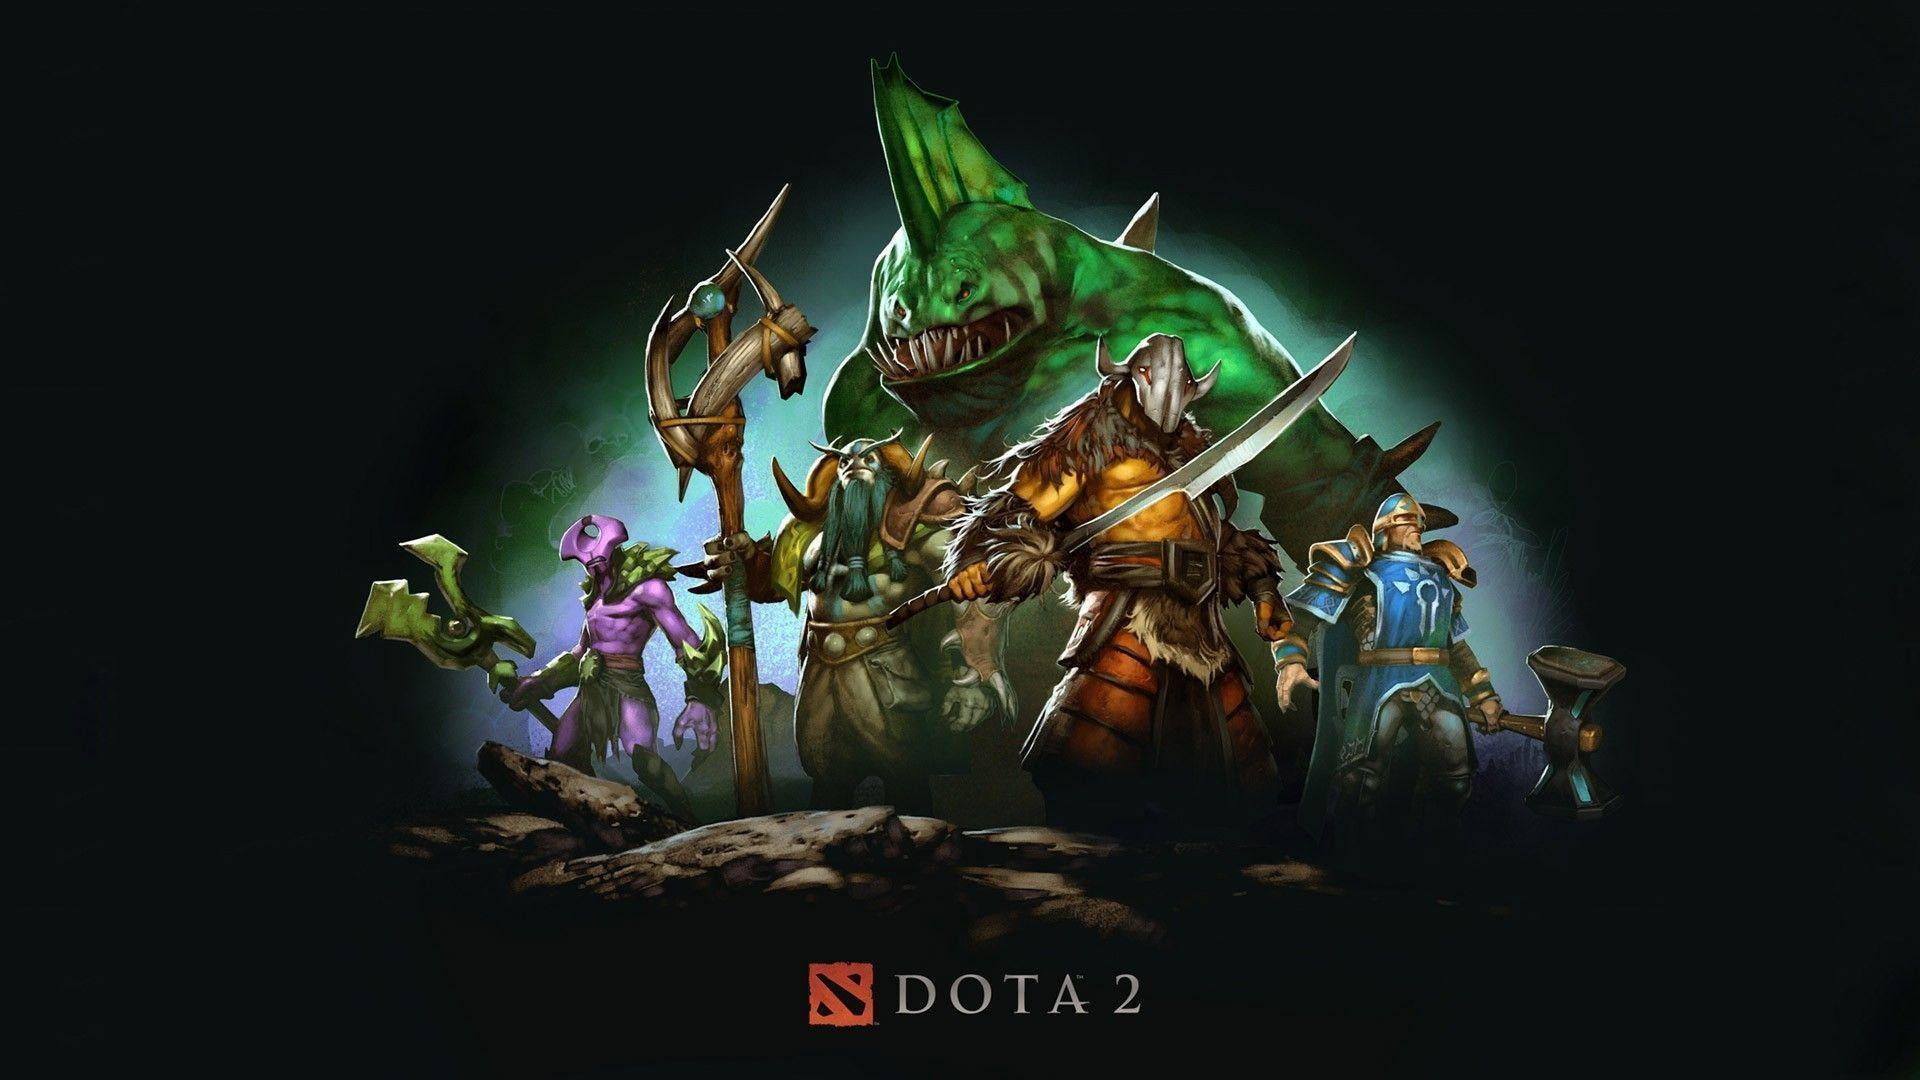 974 dota 2 wallpapers dota 2 backgrounds page 2